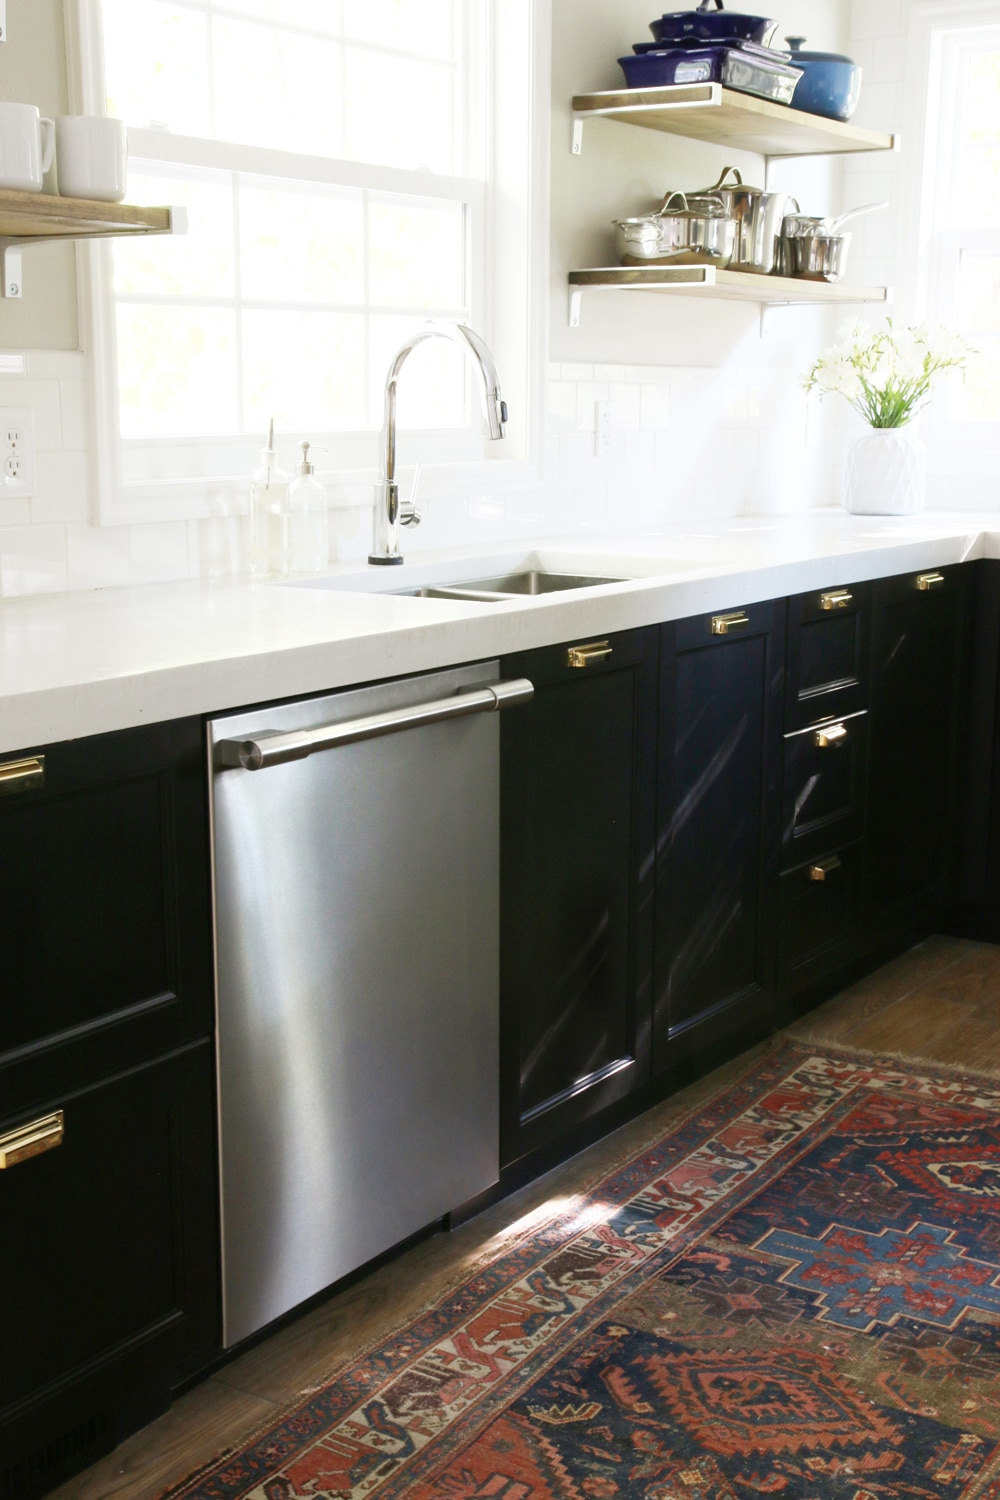 HOW OUR FRIGIDAIRE PROFESSIONAL APPLIANCES TRANSFORMED OUR